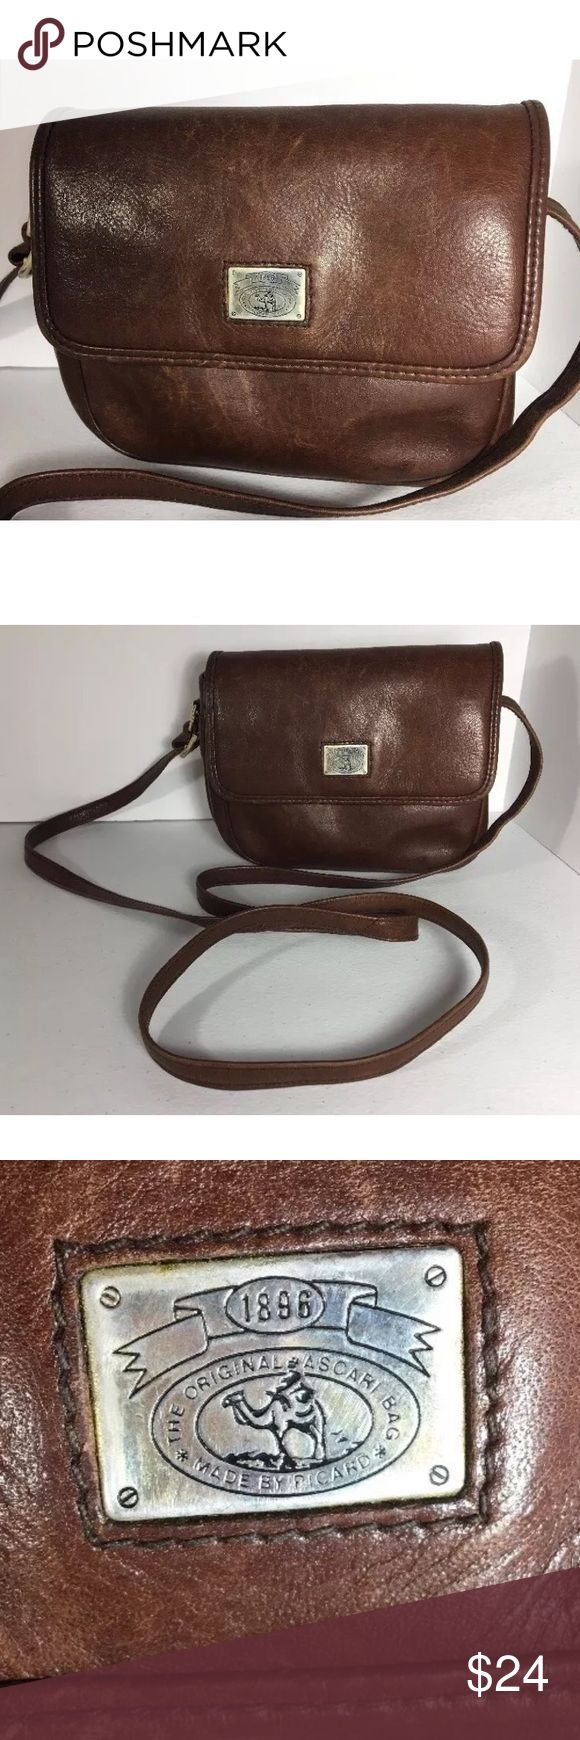 """Picard Ascori Crossbody Picard Ascori brown Leather Crossbody Bag messenger Shoulder Purse; Distressed with scuffs, has a rustic boho look; small size; measures approx 6"""" tall x 7-1/2"""" long with a strap drop up to 28"""" (adjustable); Picard Ascori Bags Crossbody Bags"""